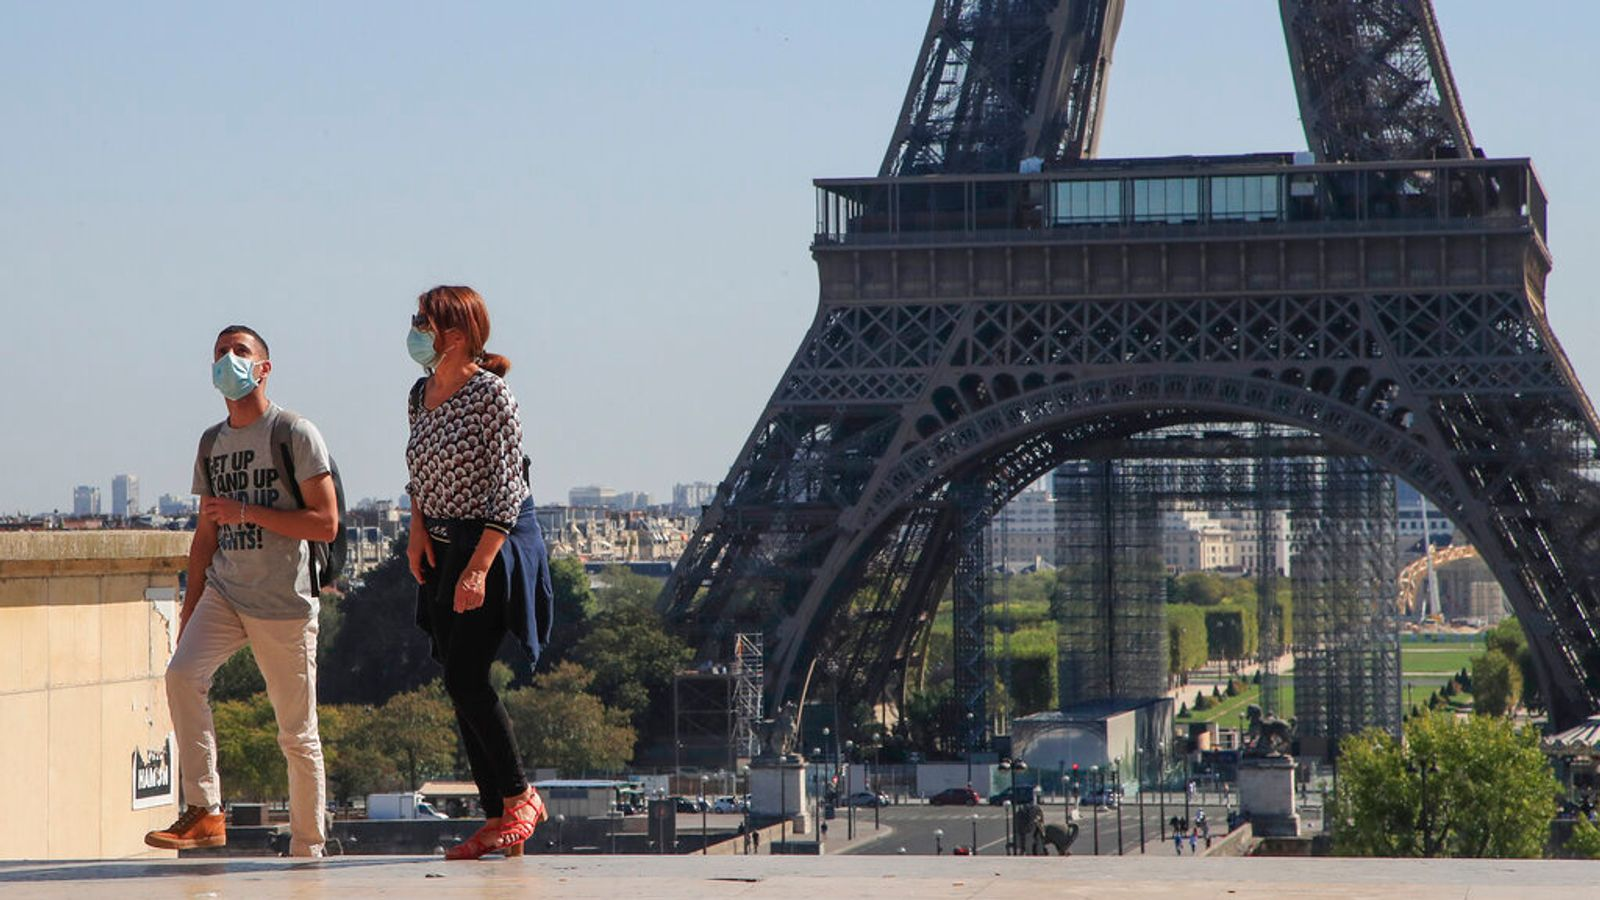 COVID-19: COVID pass now needed for Eiffel Tower and other tourist hotspots in France